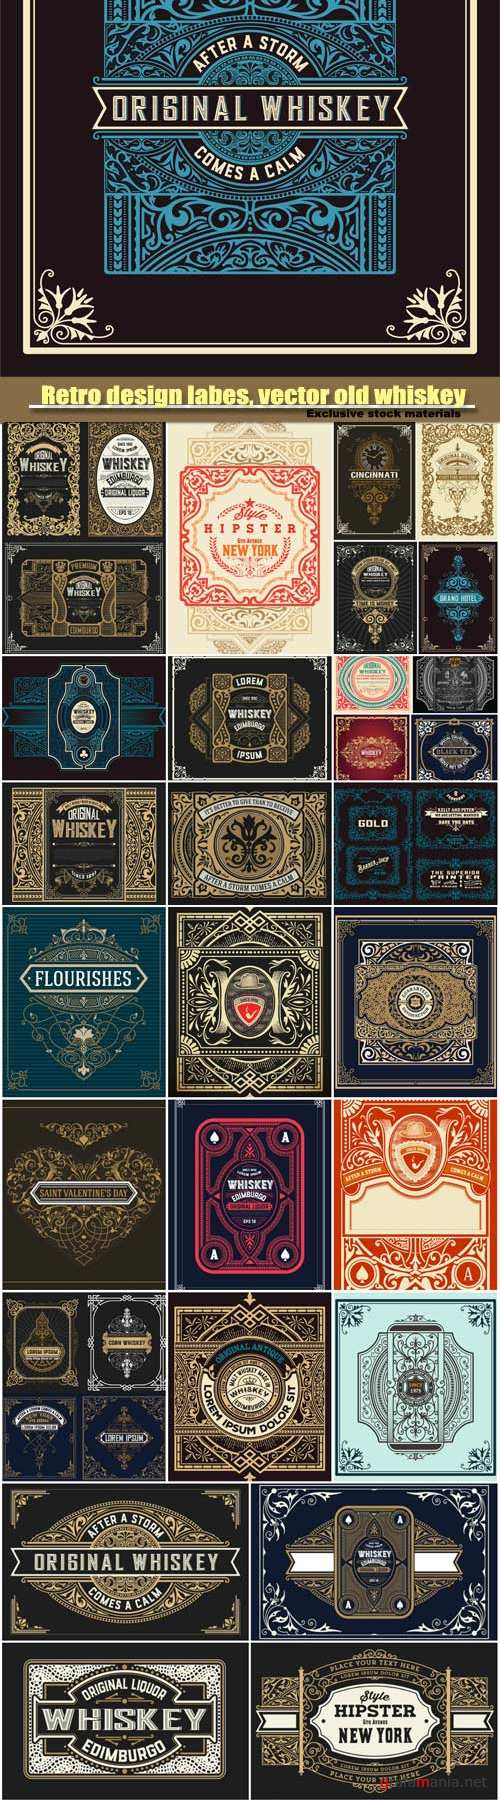 Retro design labes, vector old whiskey label